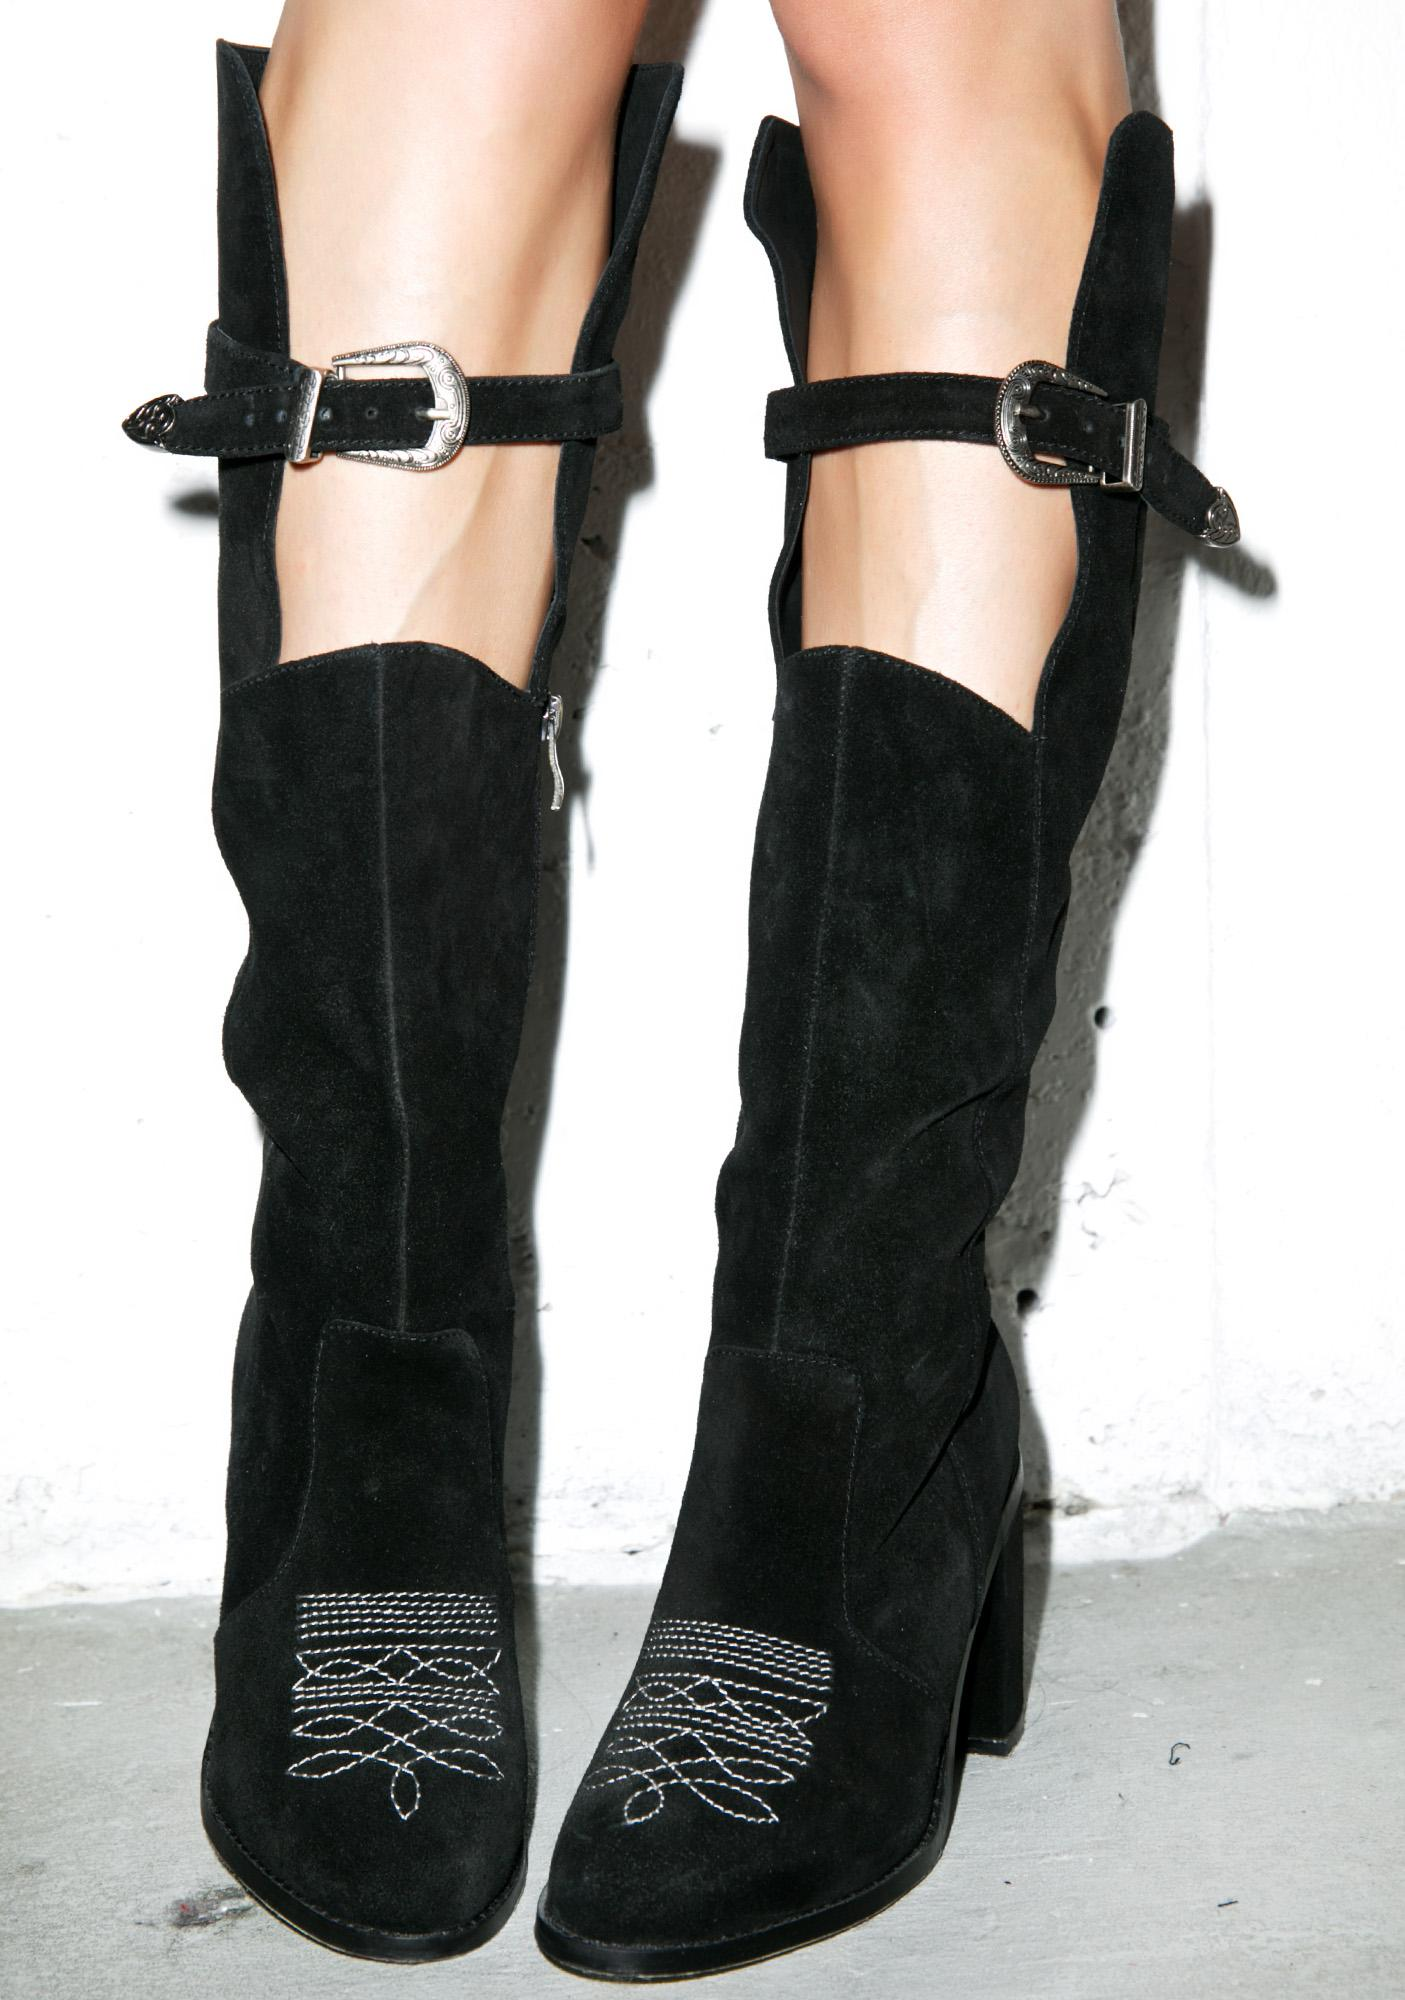 Nightwalker Desperado Boots